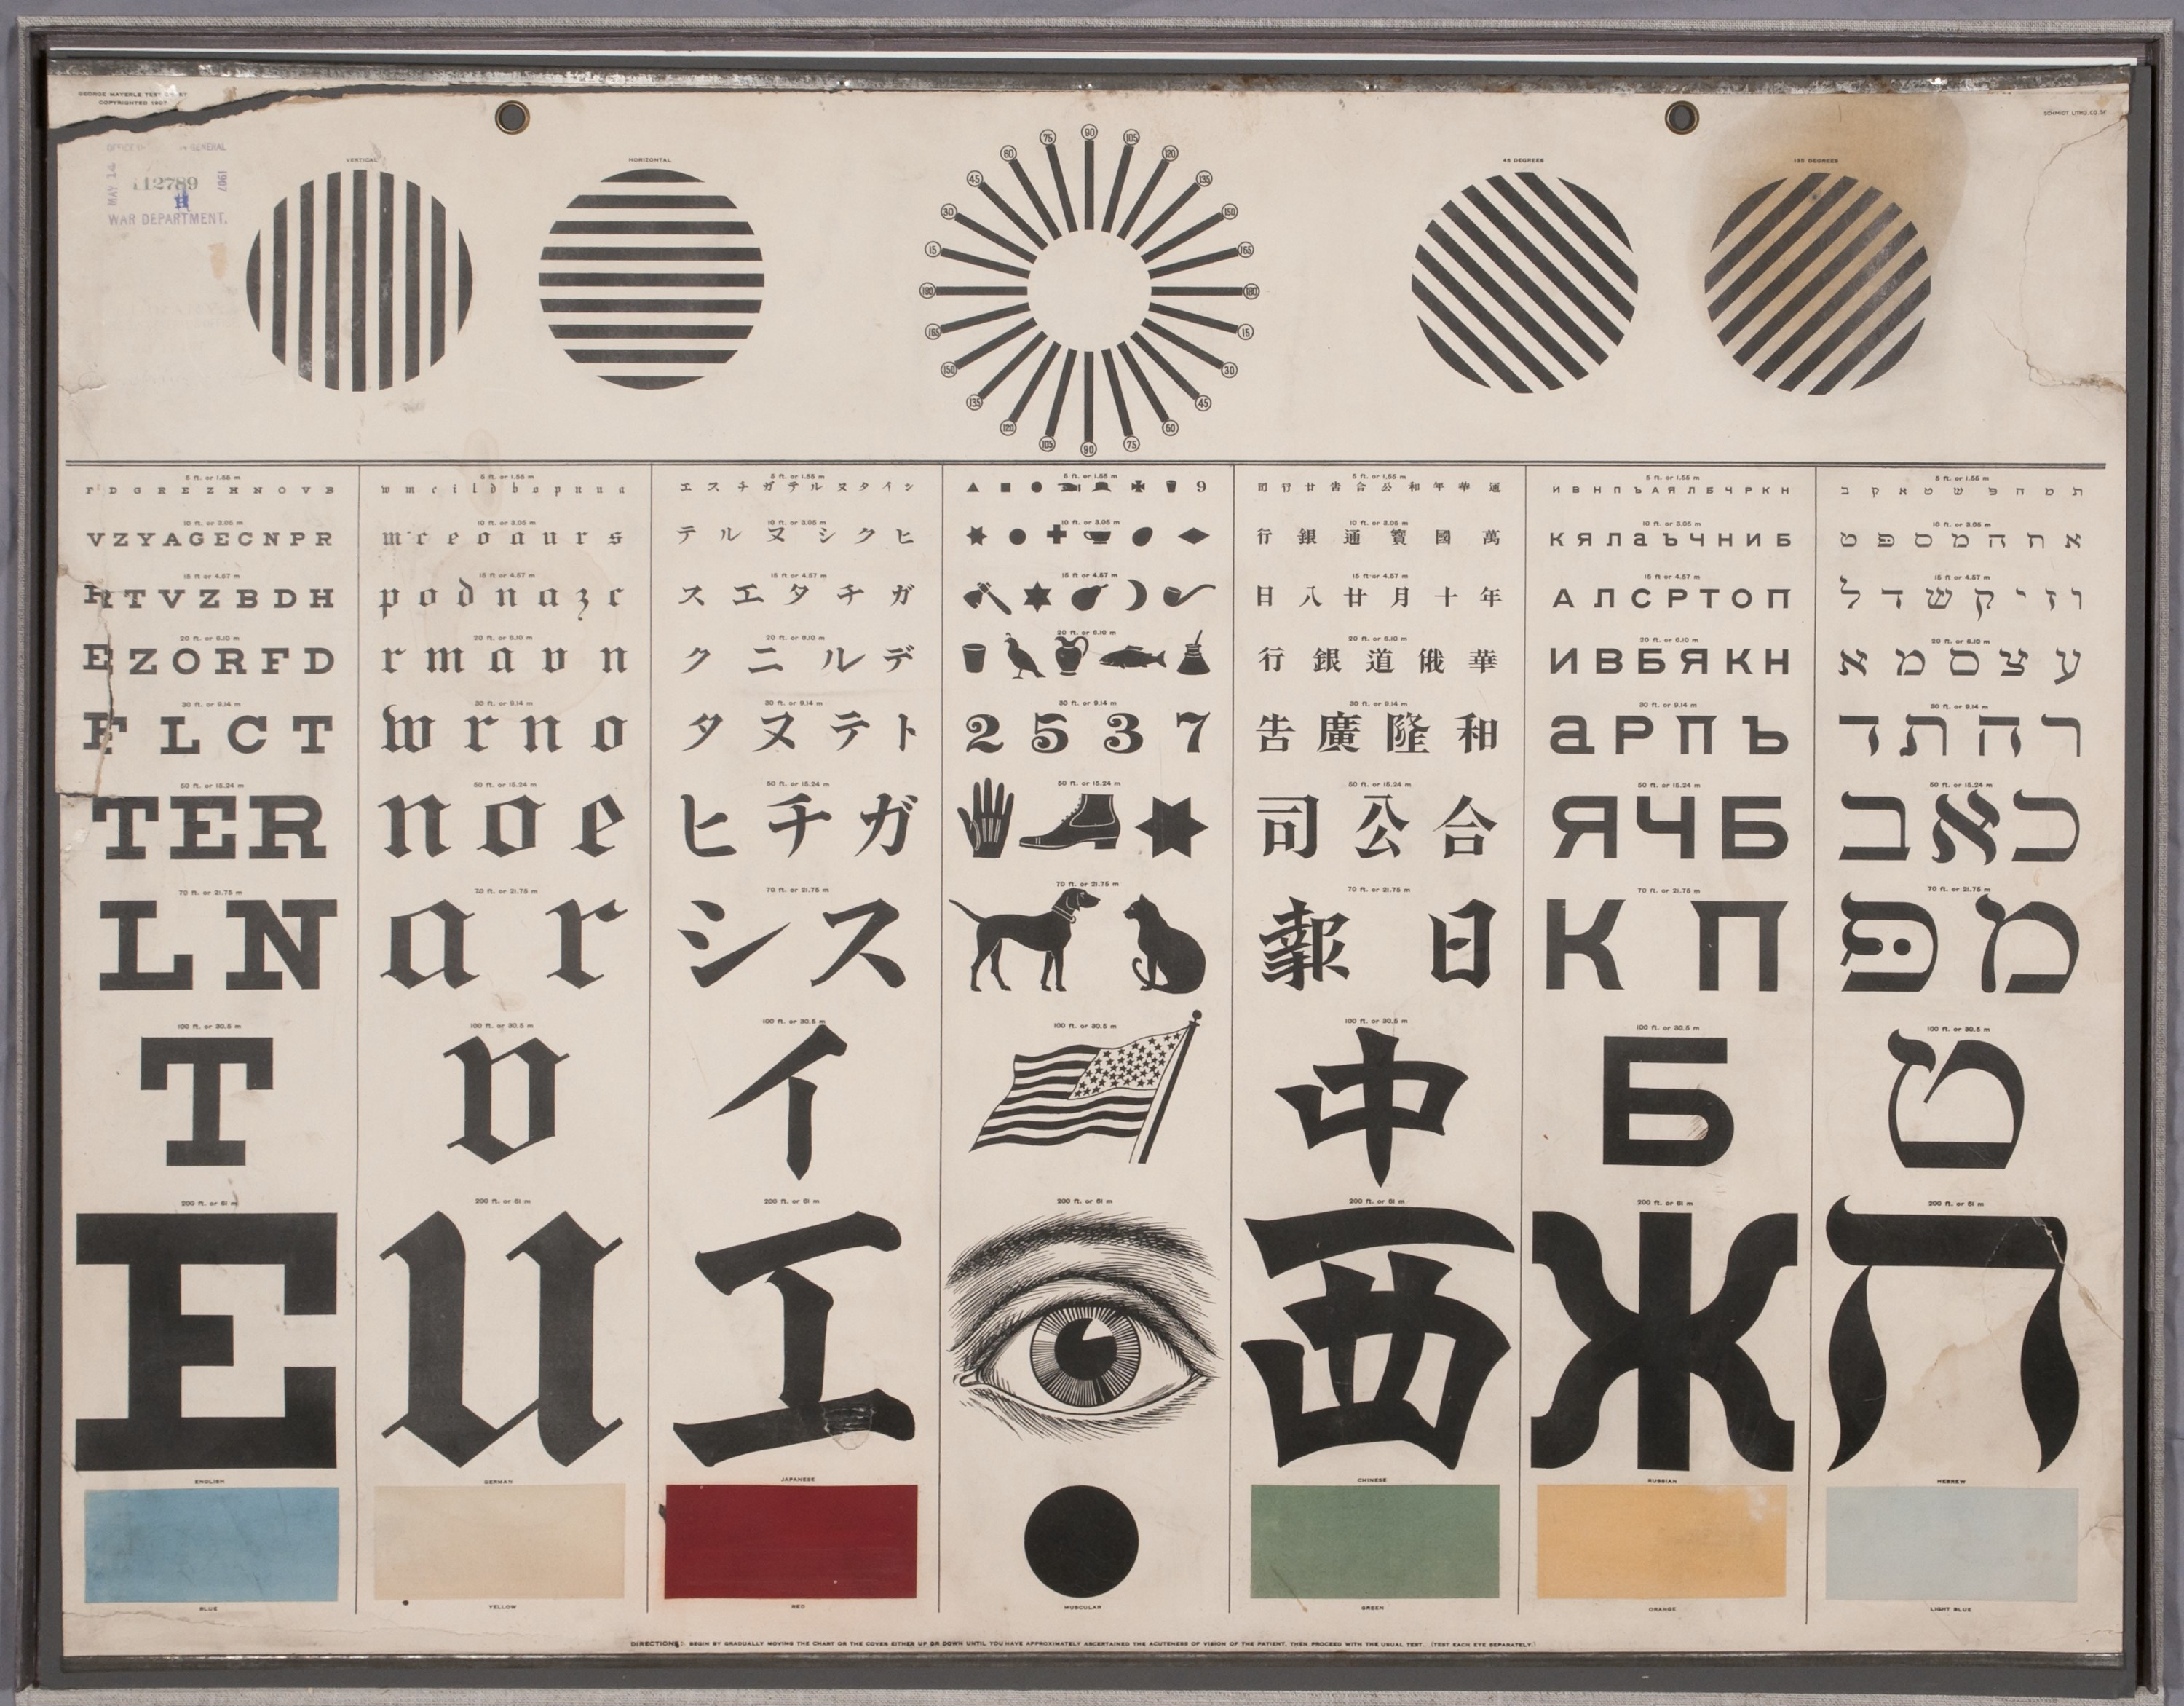 George Mayerle vision test chart